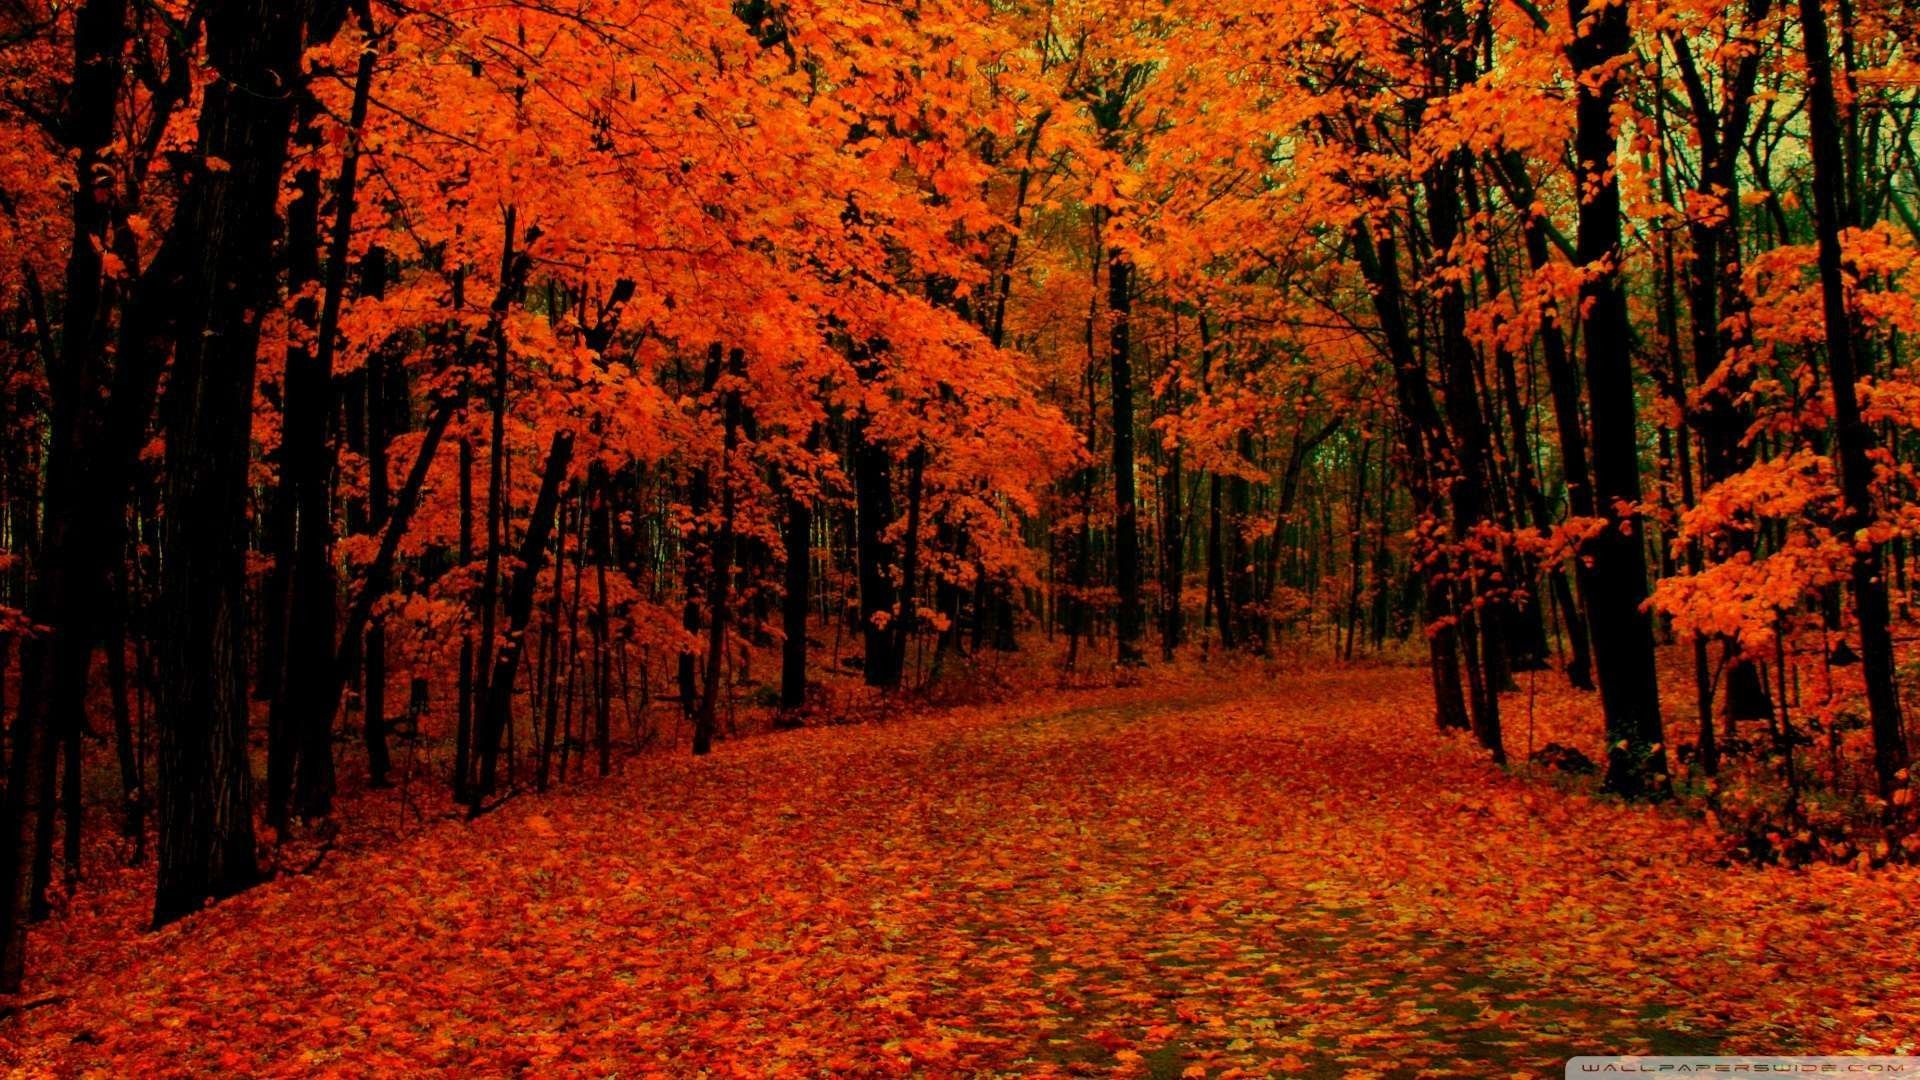 1920x1080 Wallpaper Fall Path Wallpaper 1080p Hd Upload At February 2 2014 By Fall Background Images Fall Wallpaper Autumn Leaves Wallpaper